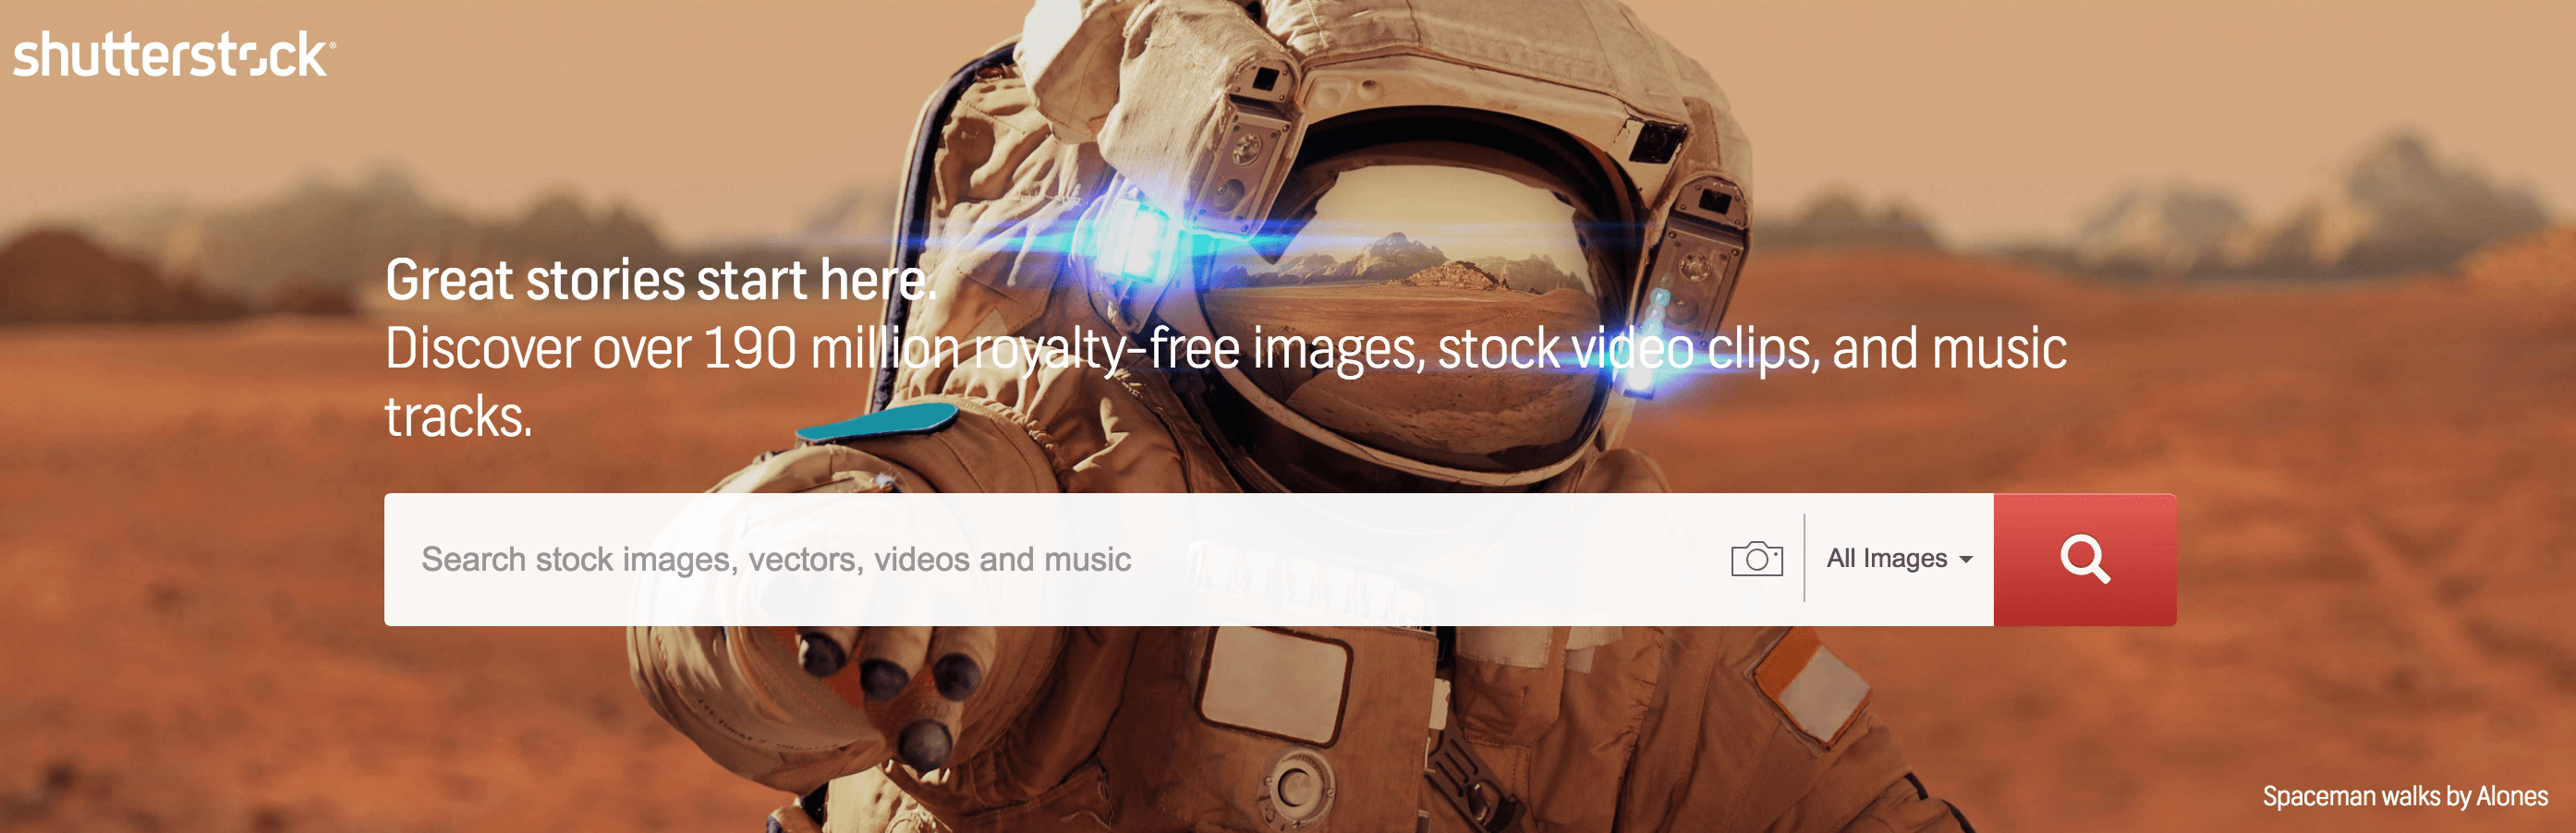 Can Shutterstock compete with 12 images downloaded per second ?